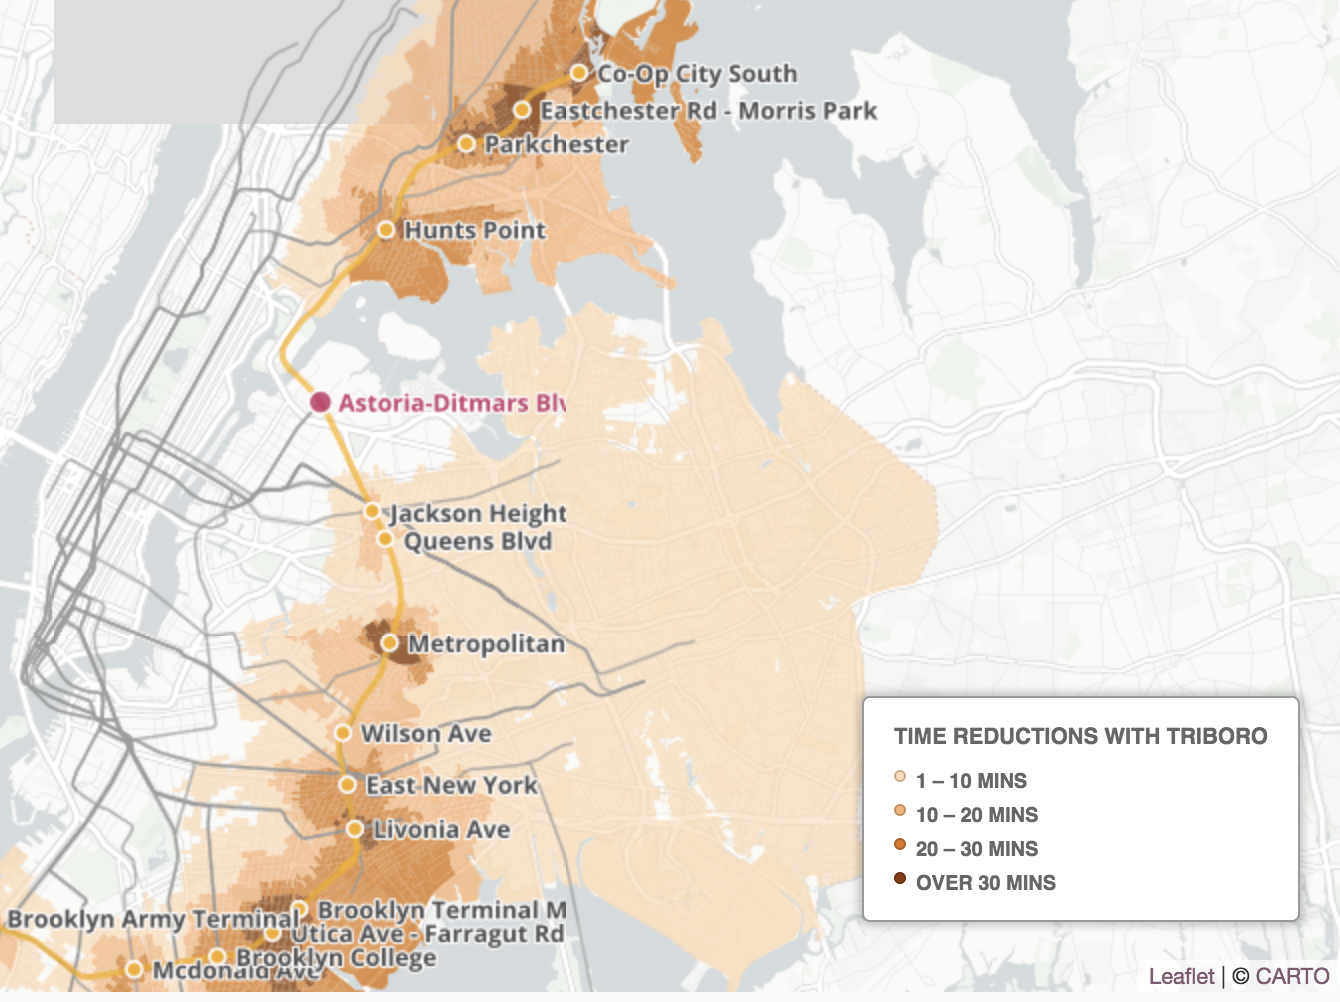 The Triboro would significantly reduce travel times between Queens and the Bronx and Brooklyn, according to its supporters. It would operate on existing train routes. Map courtesy of the RPA.